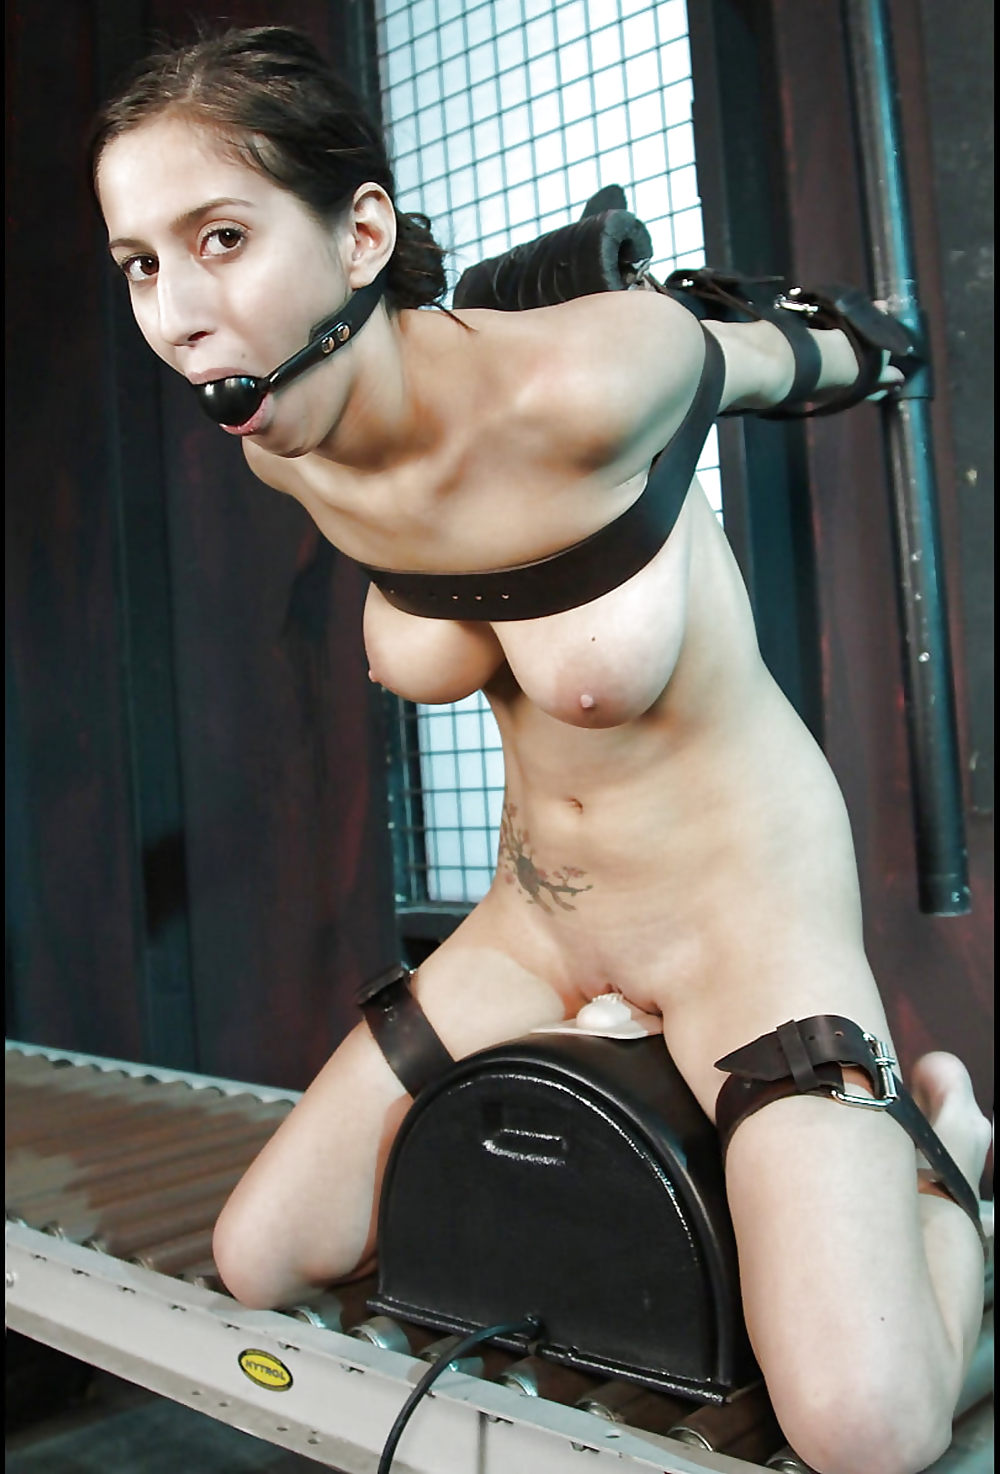 Kinky blonde whitney conroy parts her pussy lips to go for a ride on a sybian machine